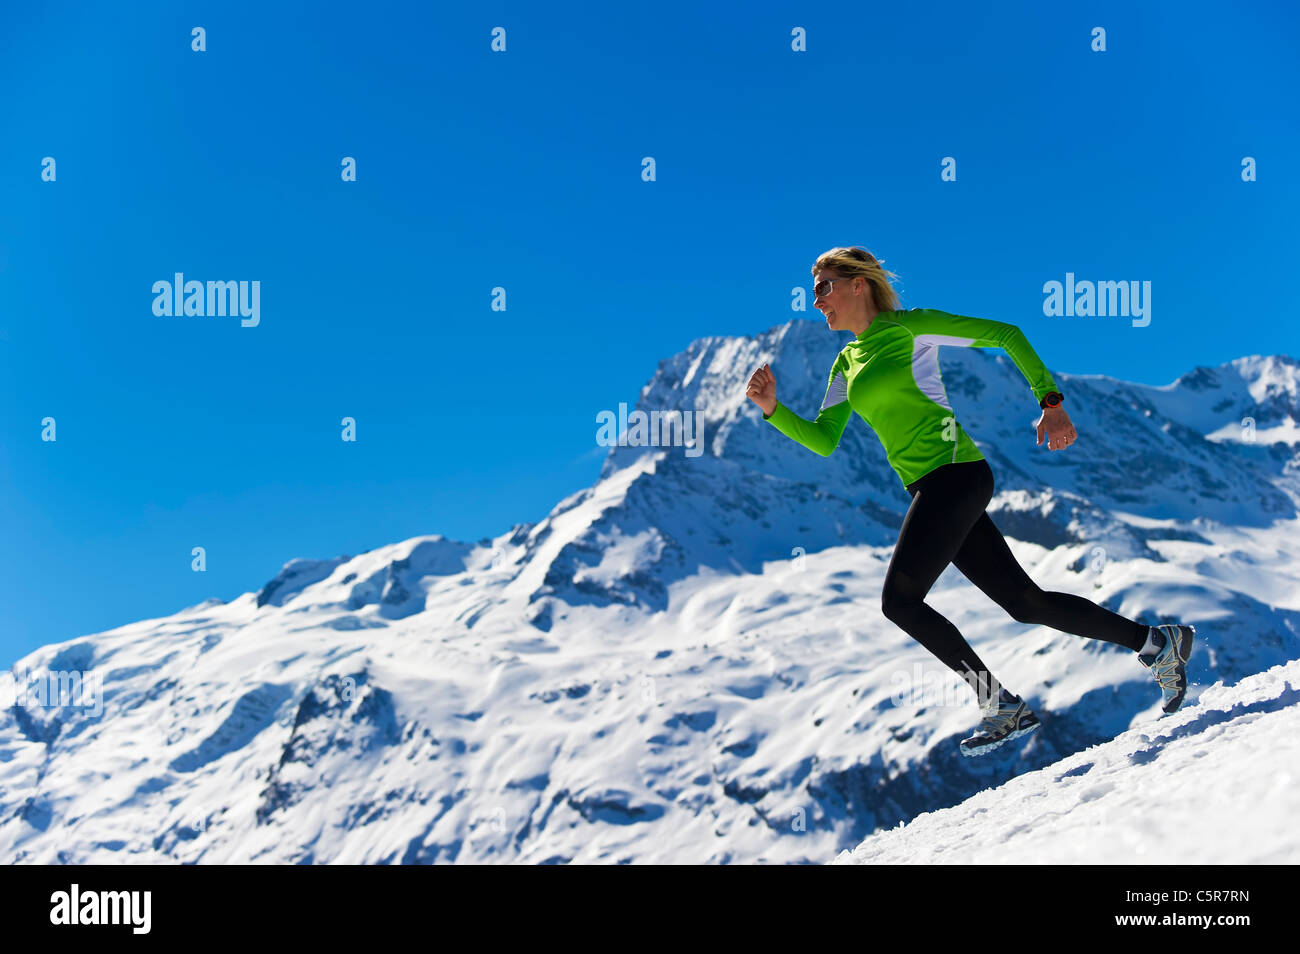 A woman jogging in high snowy alpine mountains. Stock Photo